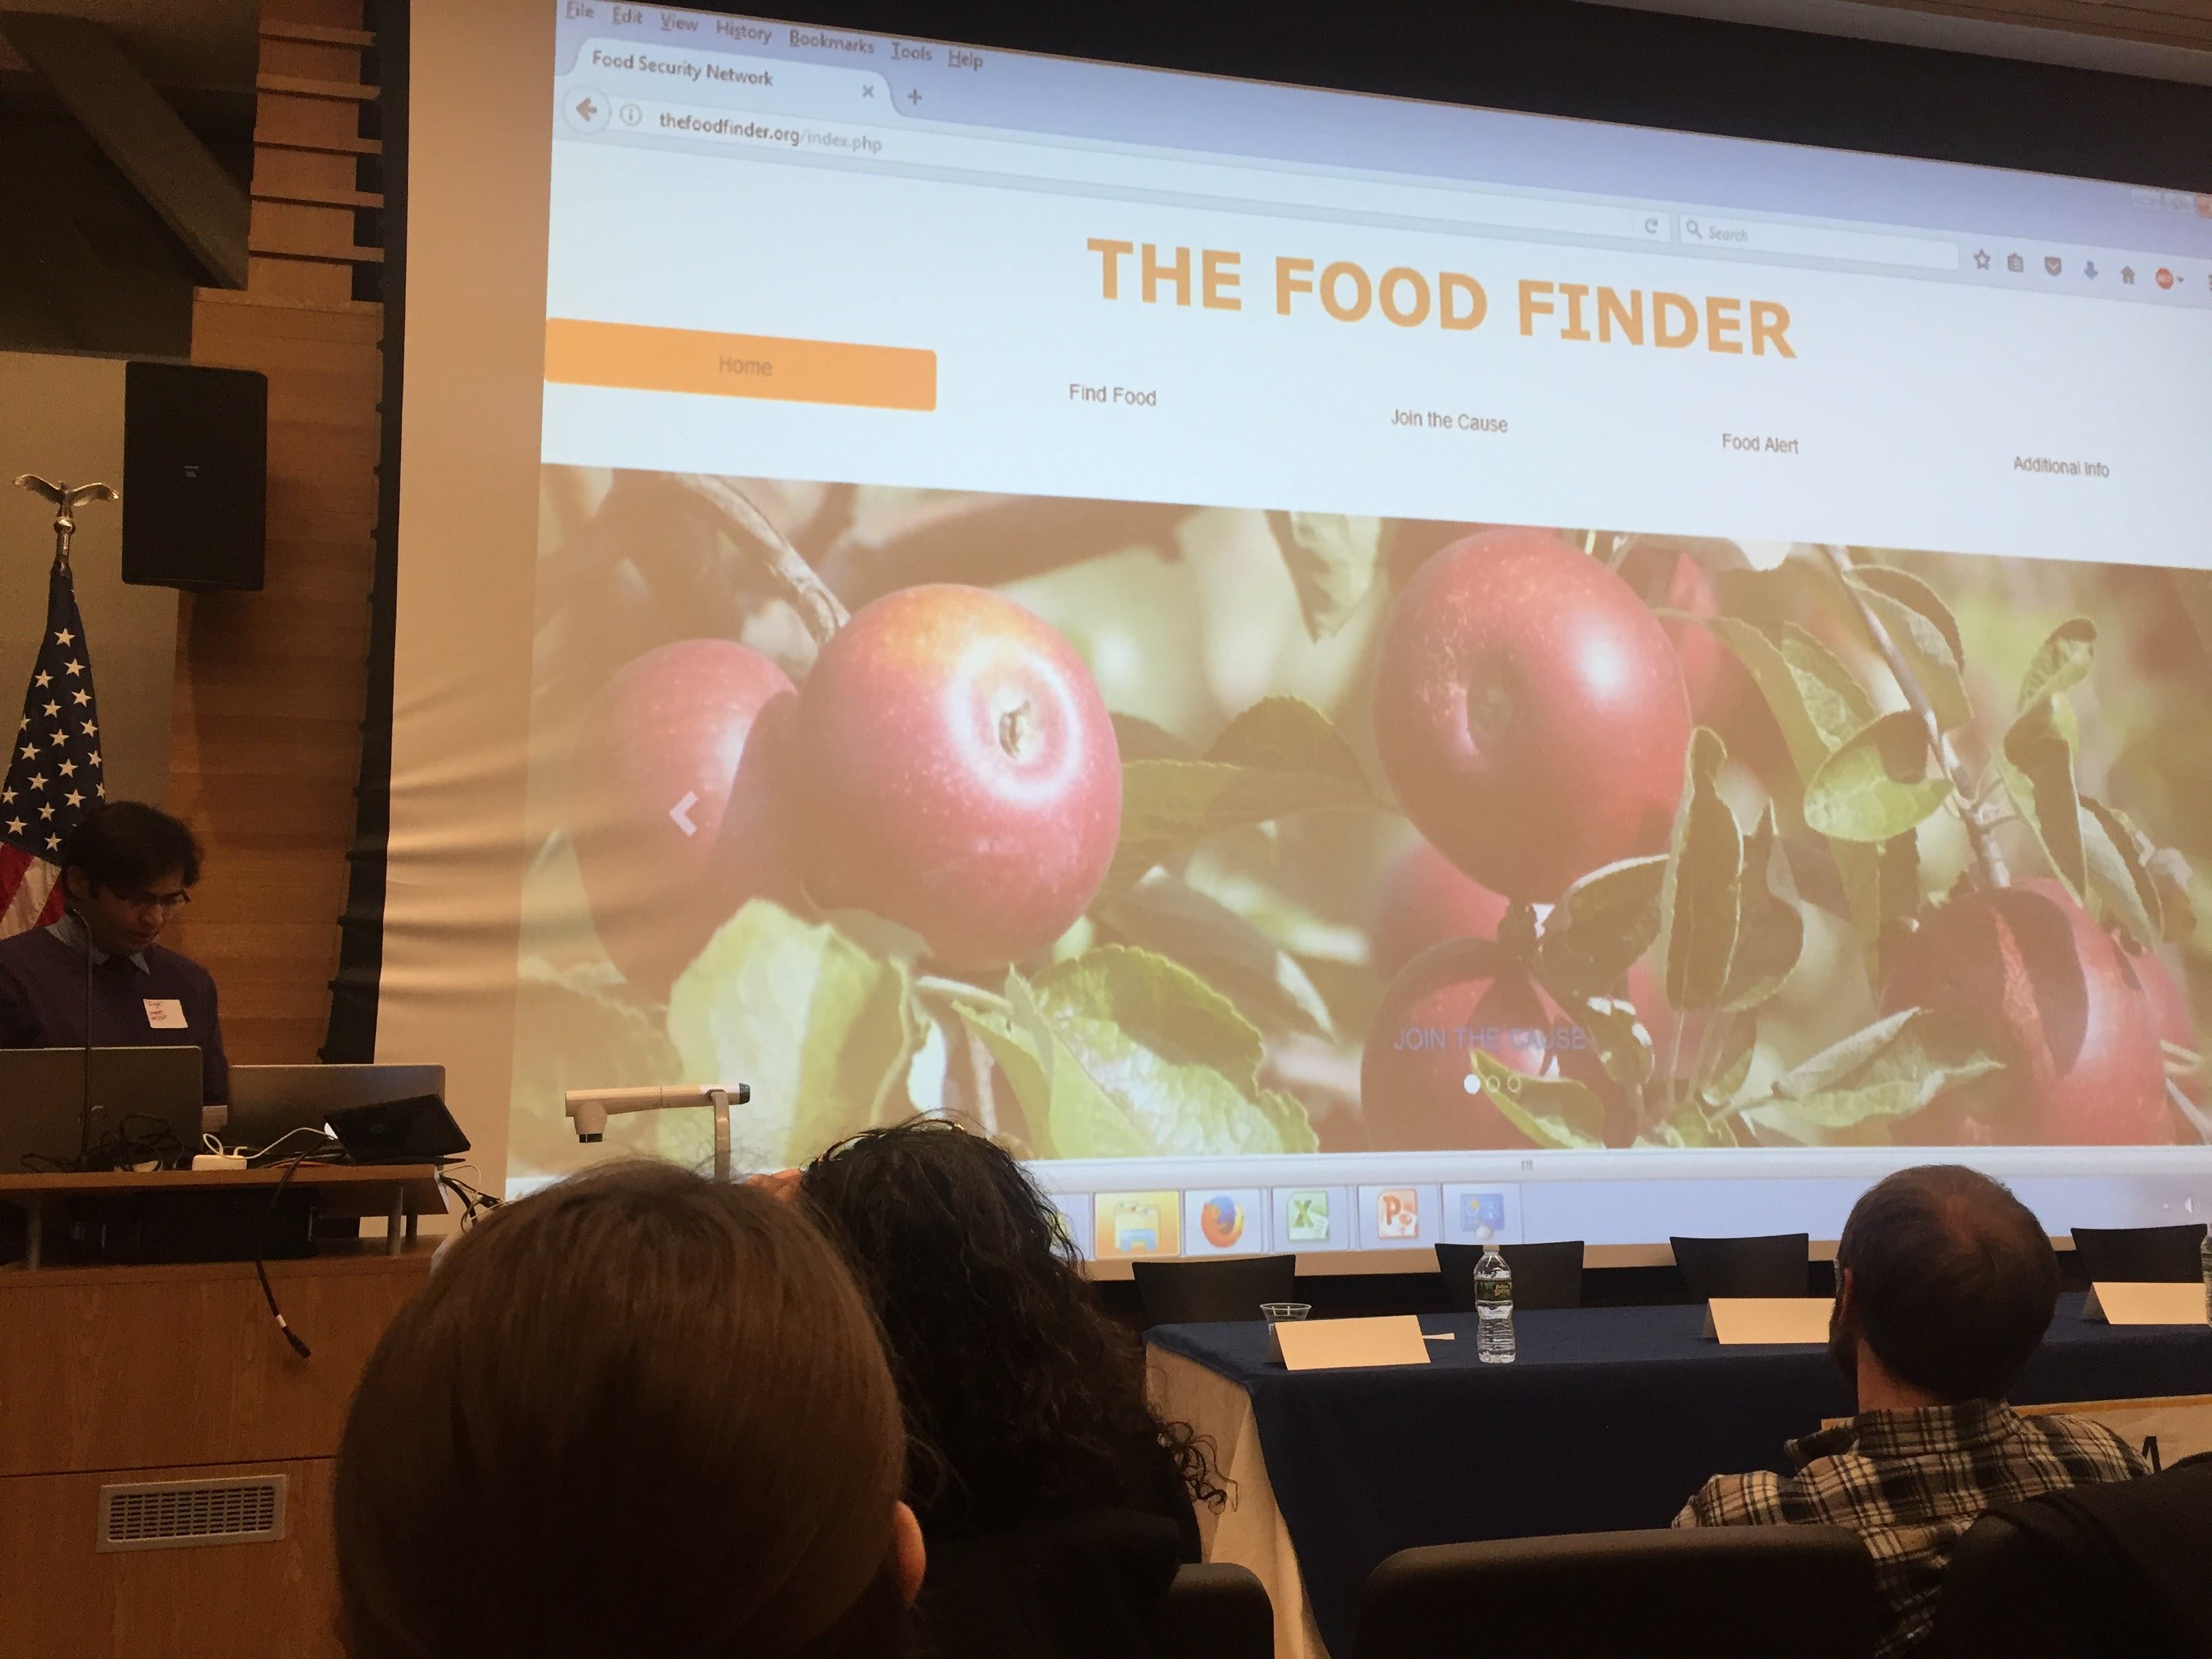 Charlton College of Business Graduate Assistant and MBA student Shaktisingh Rijput presents The Food Finder, an application he has developed in collaboration with MIS students Bryan Gwozdz and Reid Mello and Associate Professor Timothy Shea.